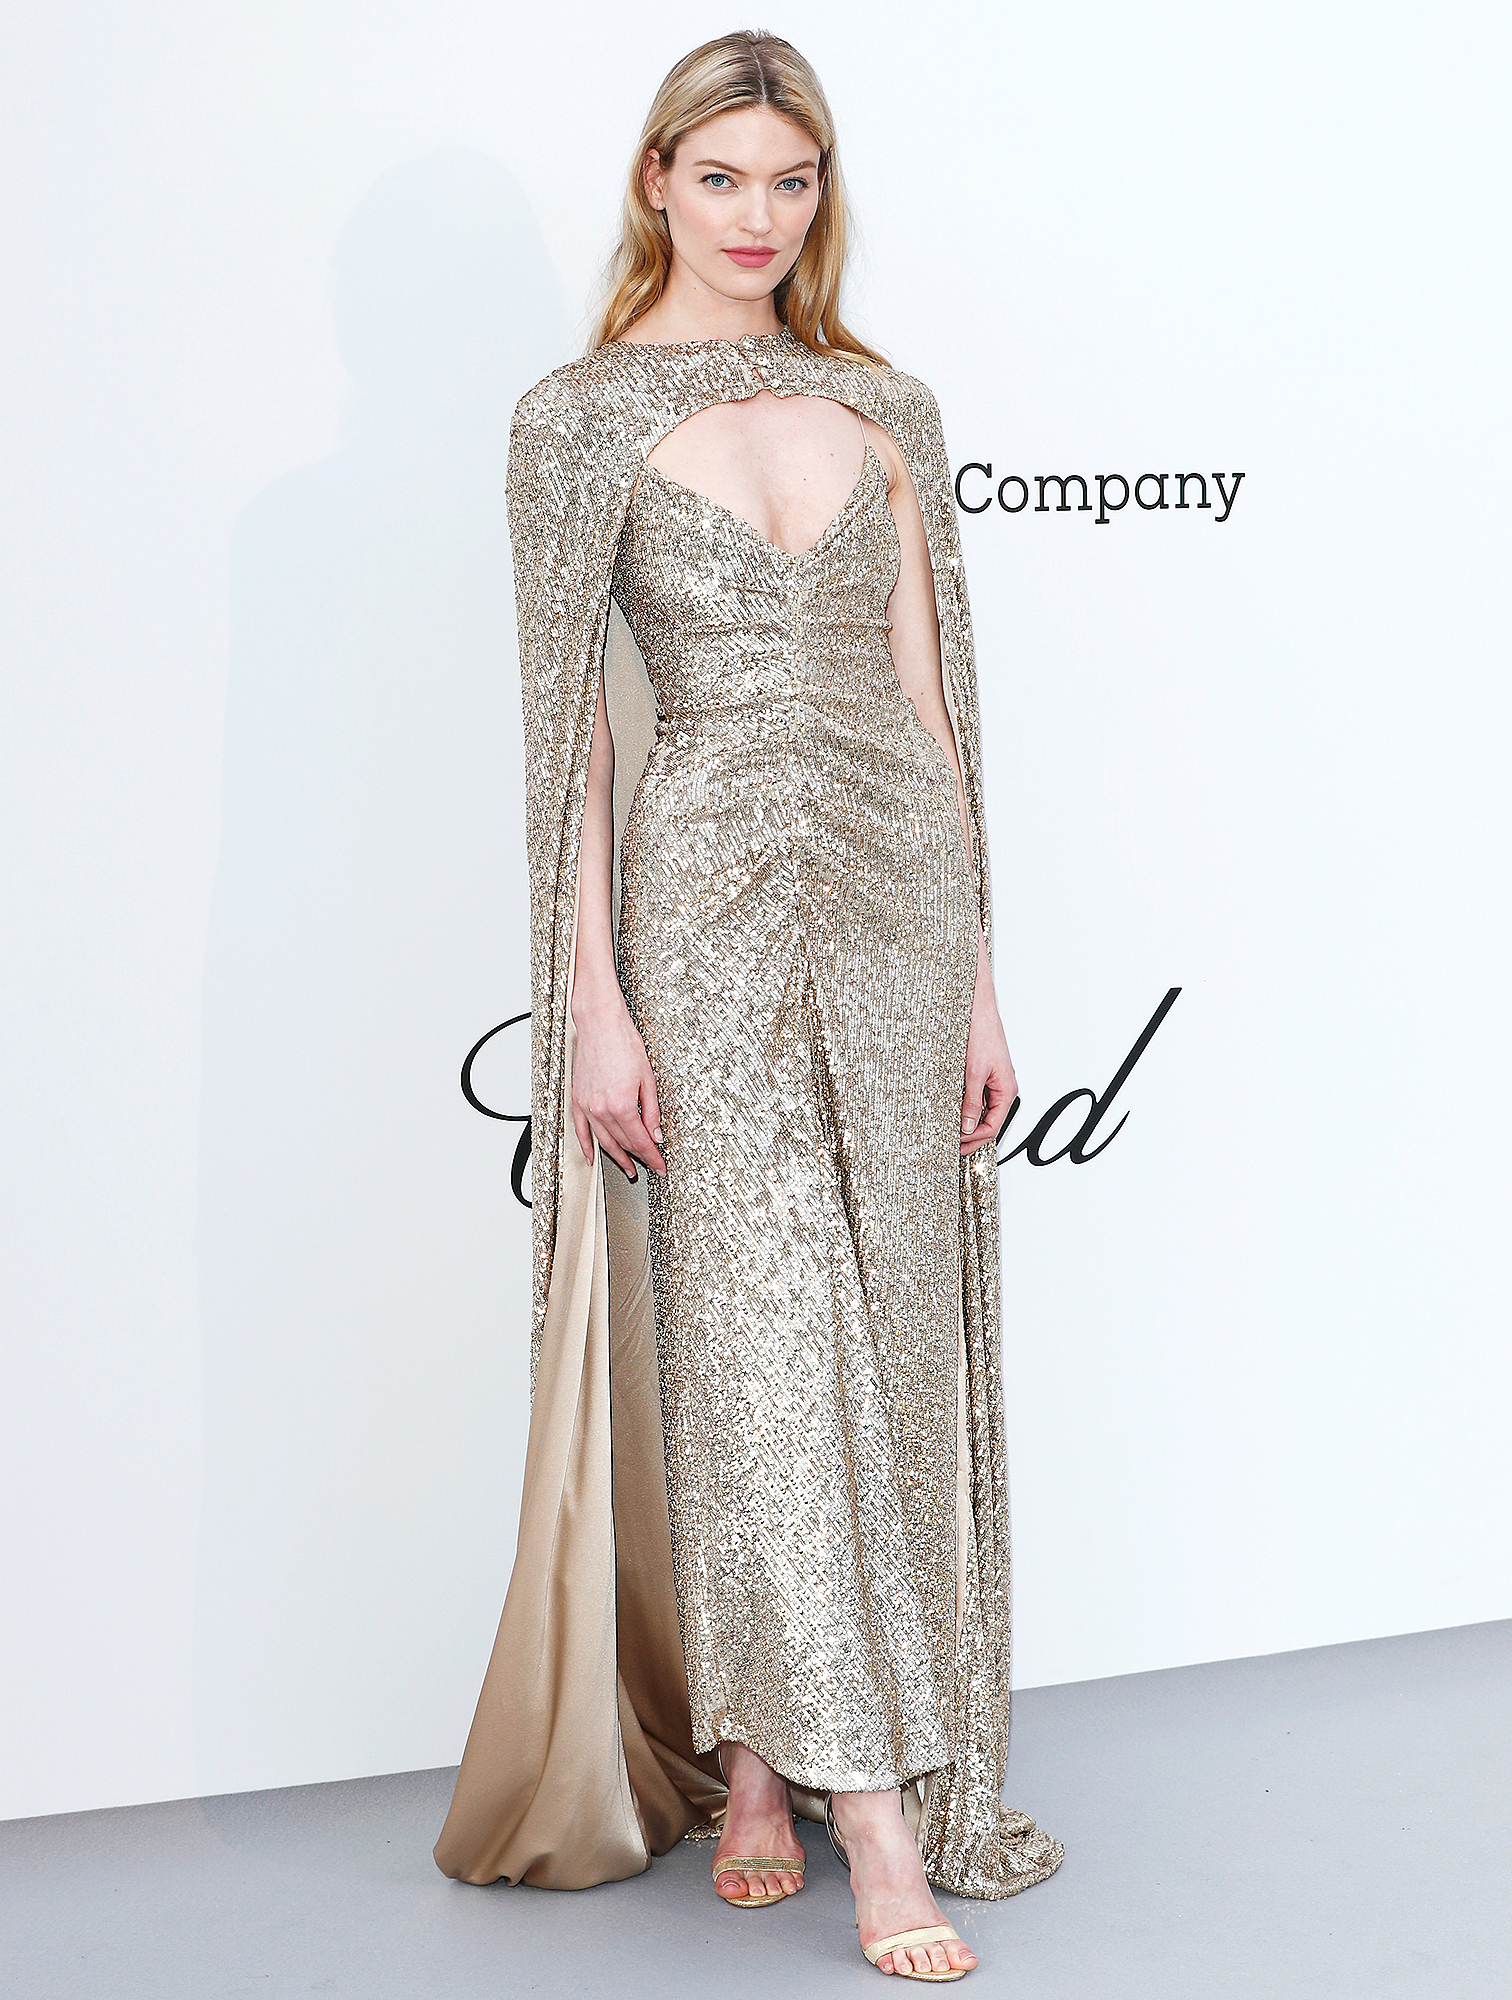 Martha-Hunt - At the amfAR Cannes Gala on Thursday, May 23, the model was a golden goddess in sparkling Monique Lhuillier.